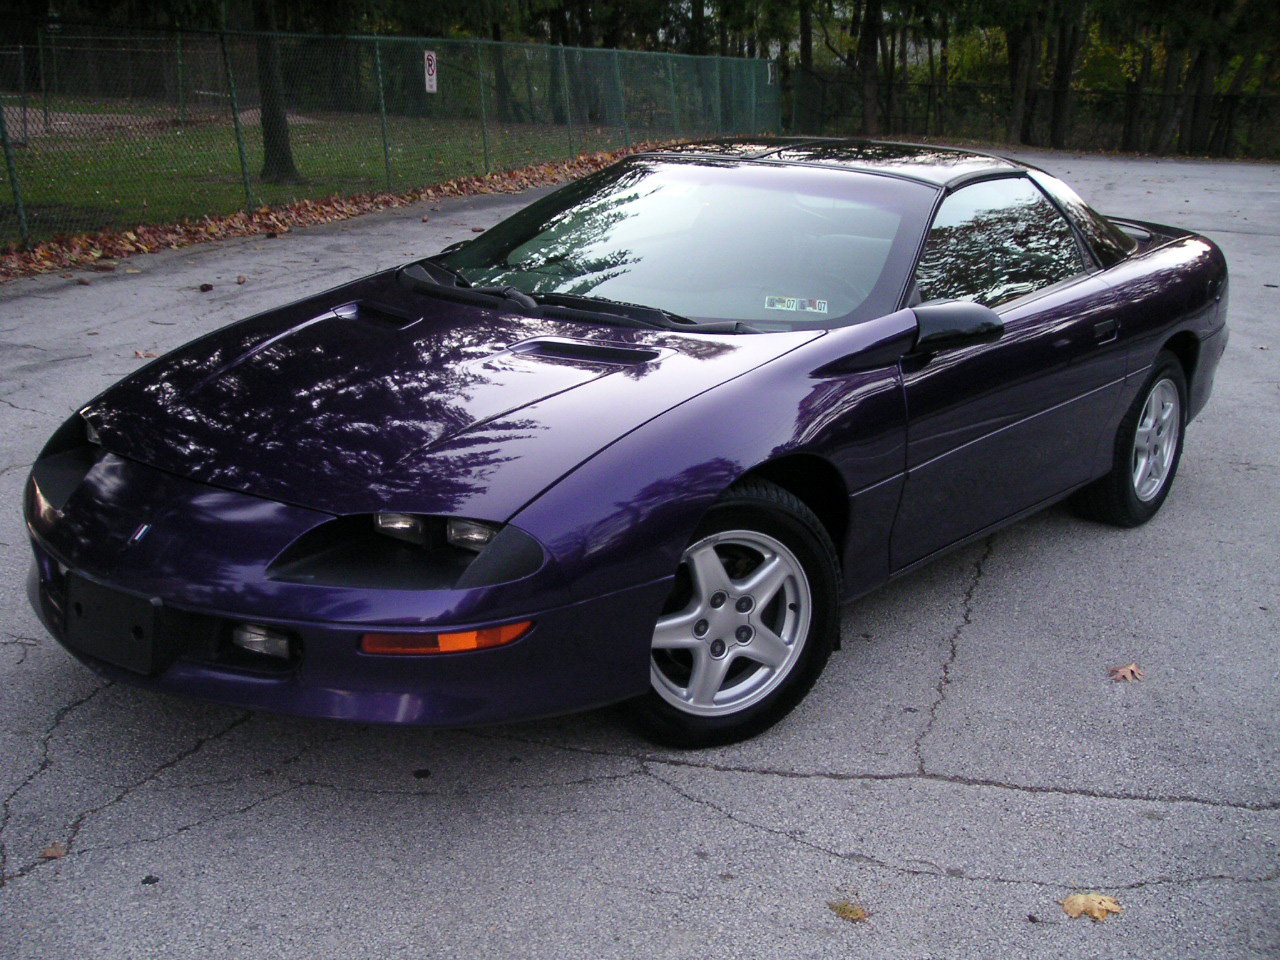 1997 to 1998 bright purple metallic camaro rs z28 don 39 t quote pics ls1tech camaro and. Black Bedroom Furniture Sets. Home Design Ideas